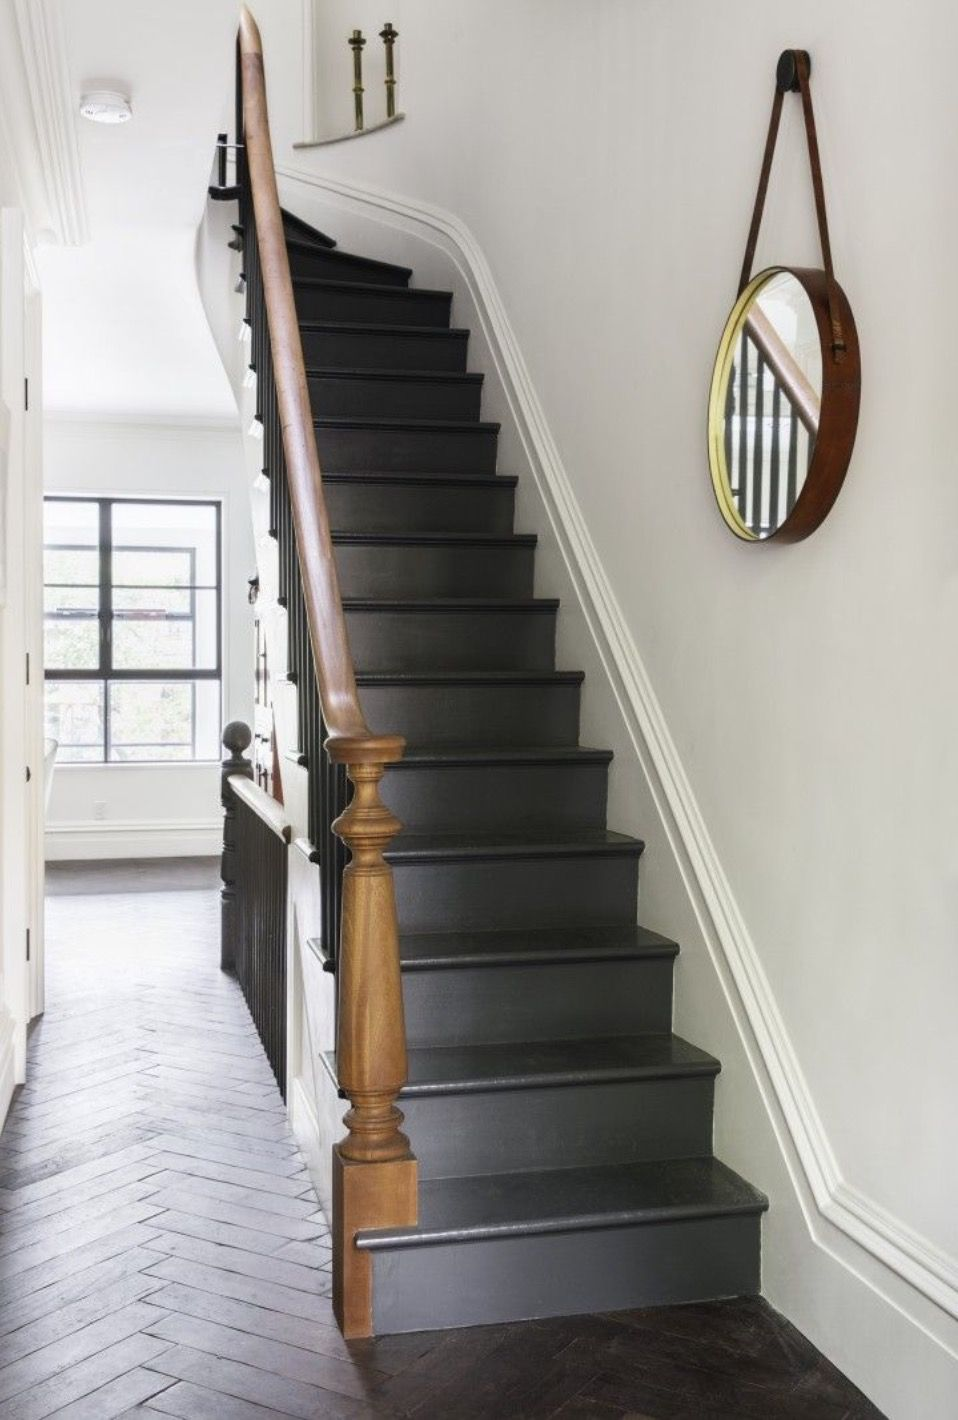 Indoor Outdoor Living Brooklyn Style Remodelista Staircase | Wood And Painted Stairs | Diy | Before And After | Striped | Refinish | Oak